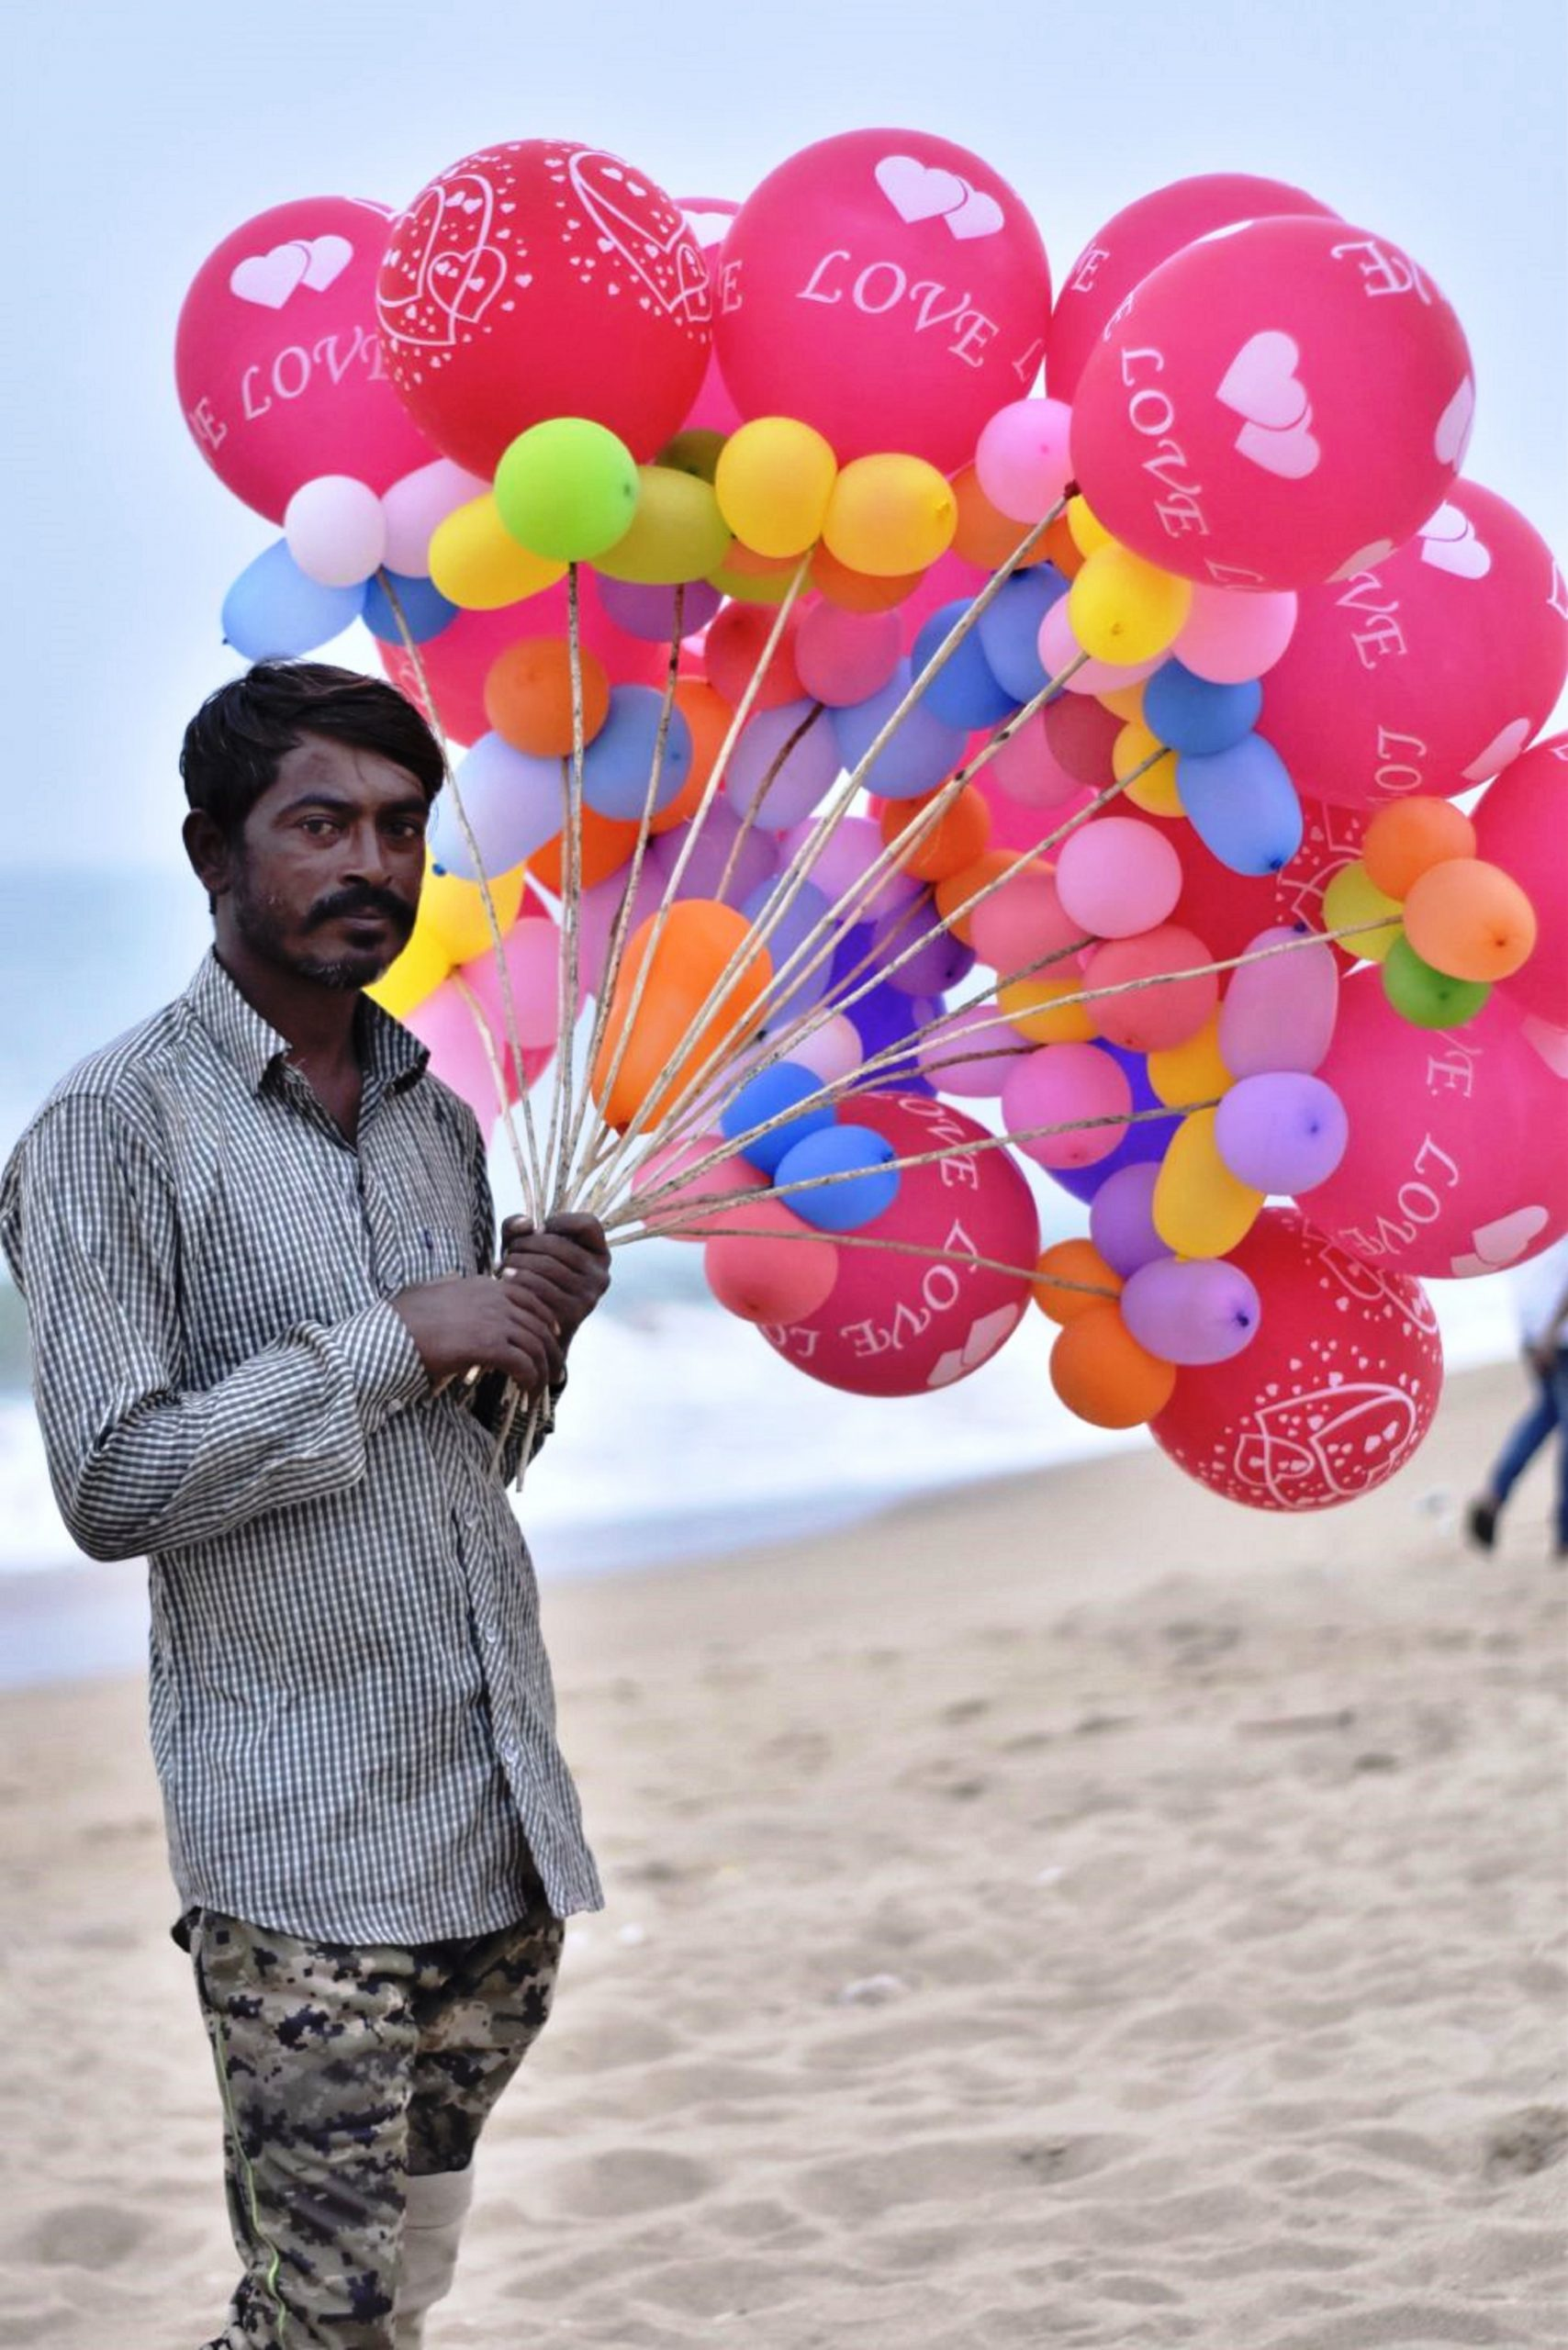 balloon seller with balloons